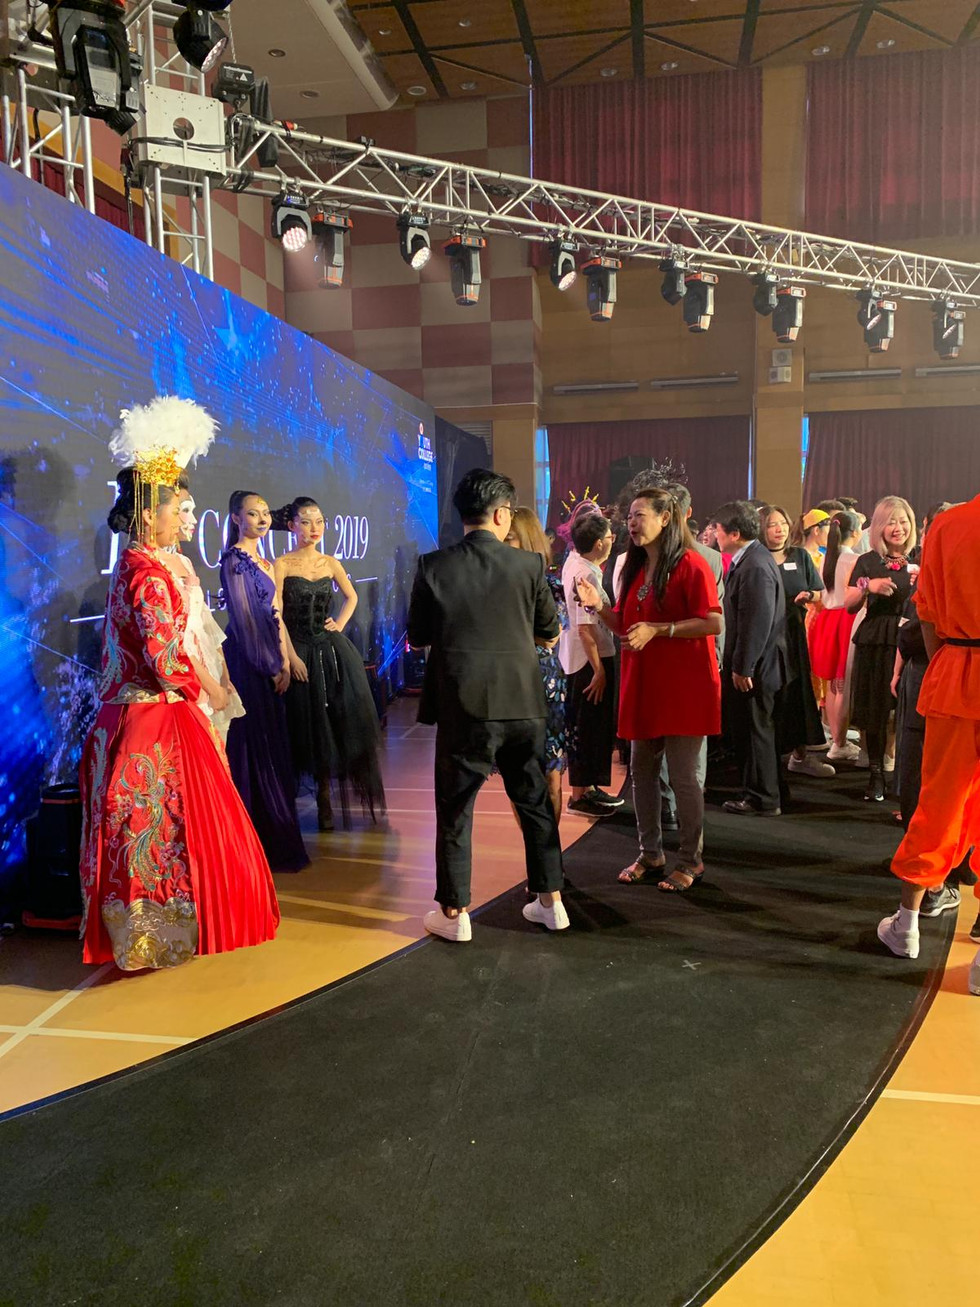 Group of cultural costume on fashion runway